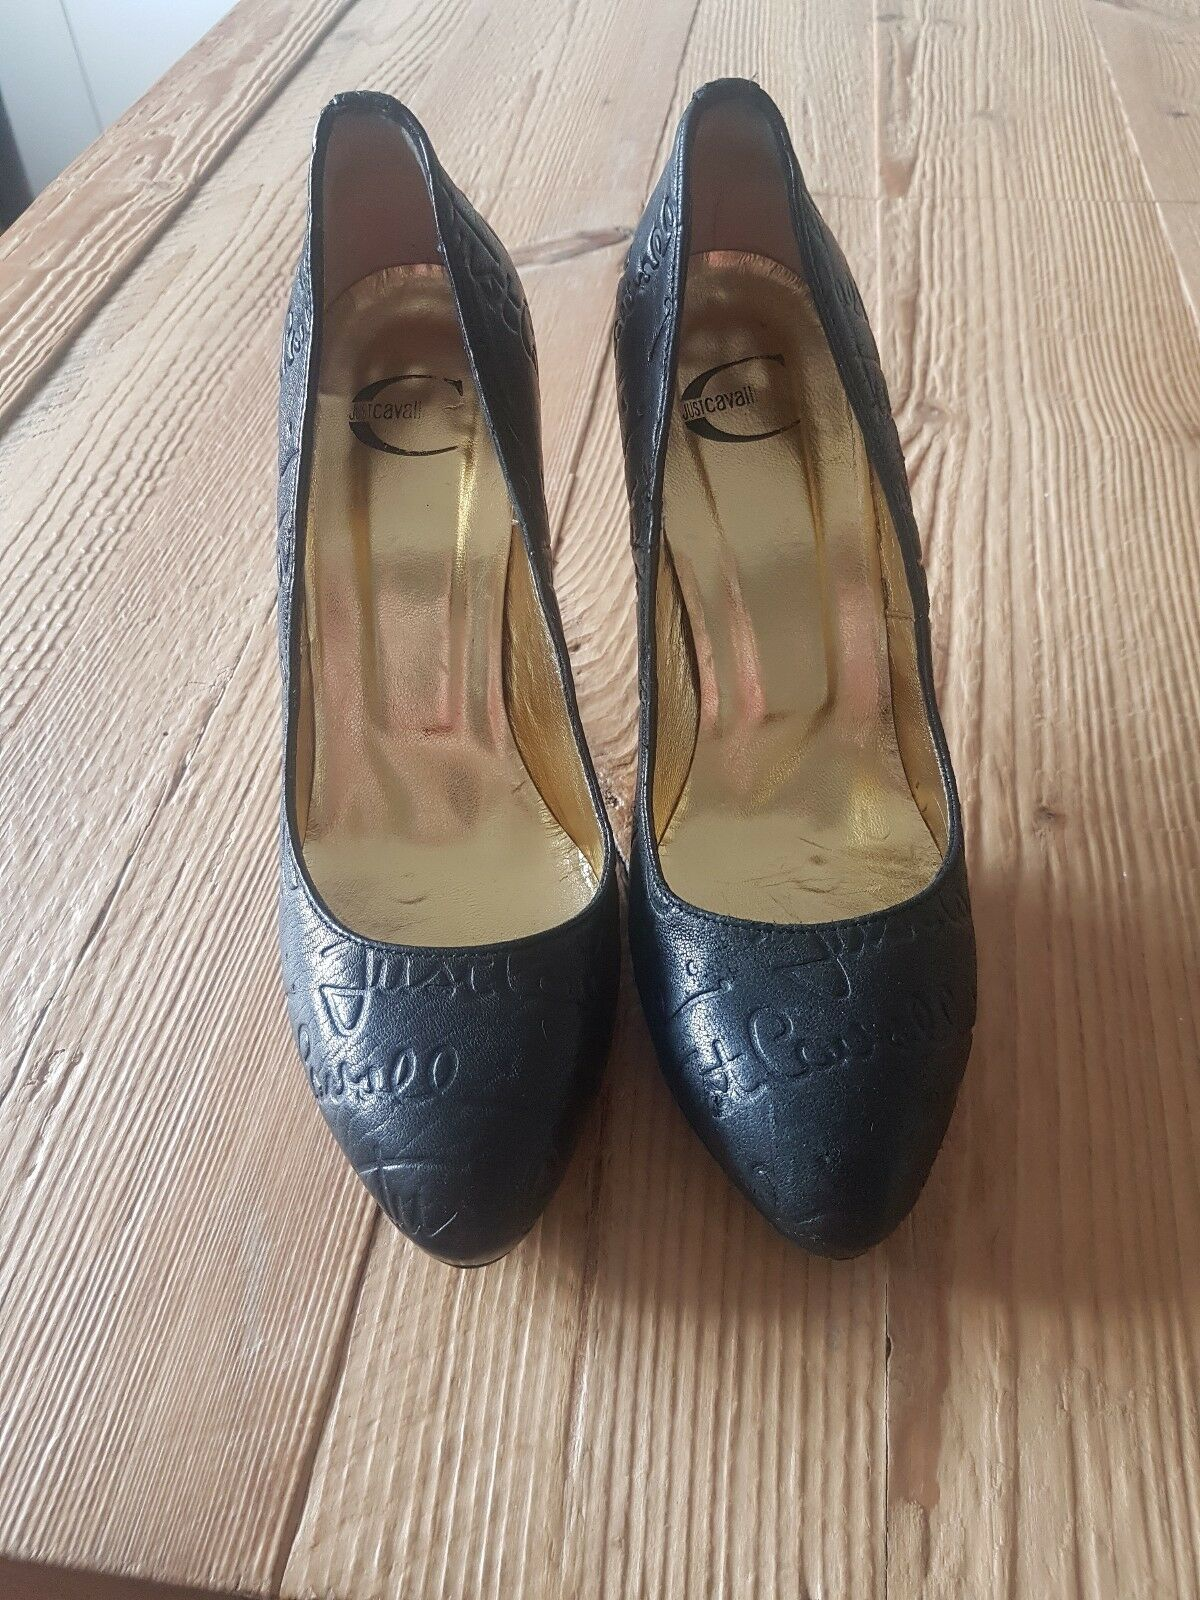 Just Cavalli black leather shoes size 5